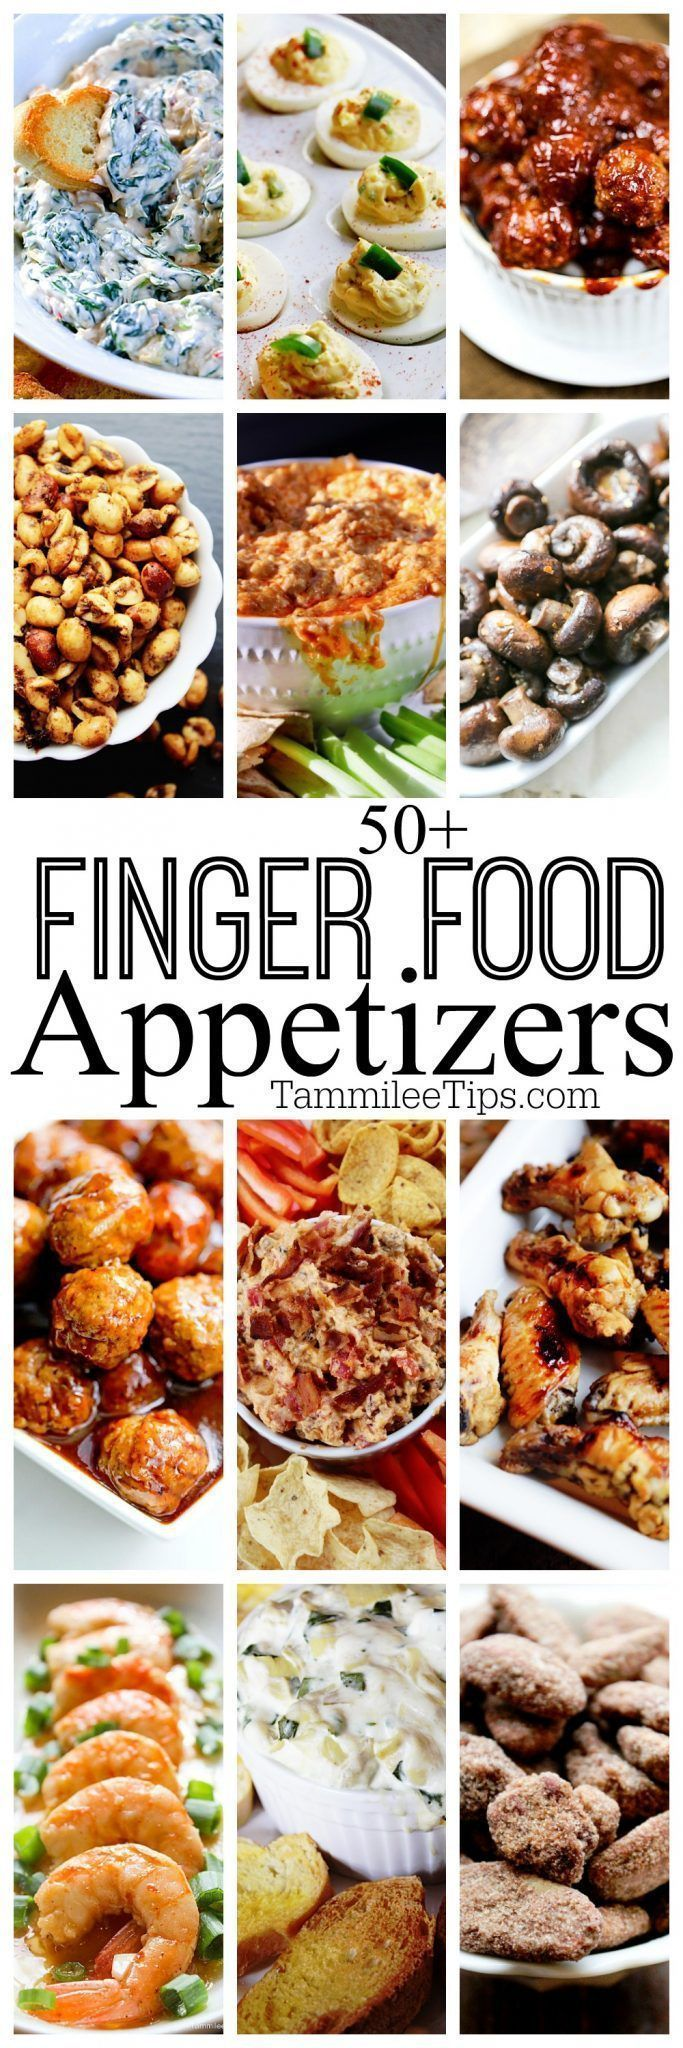 50+ finger food appetizer recipes perfect for holiday parties, super bowl football parties, birthda